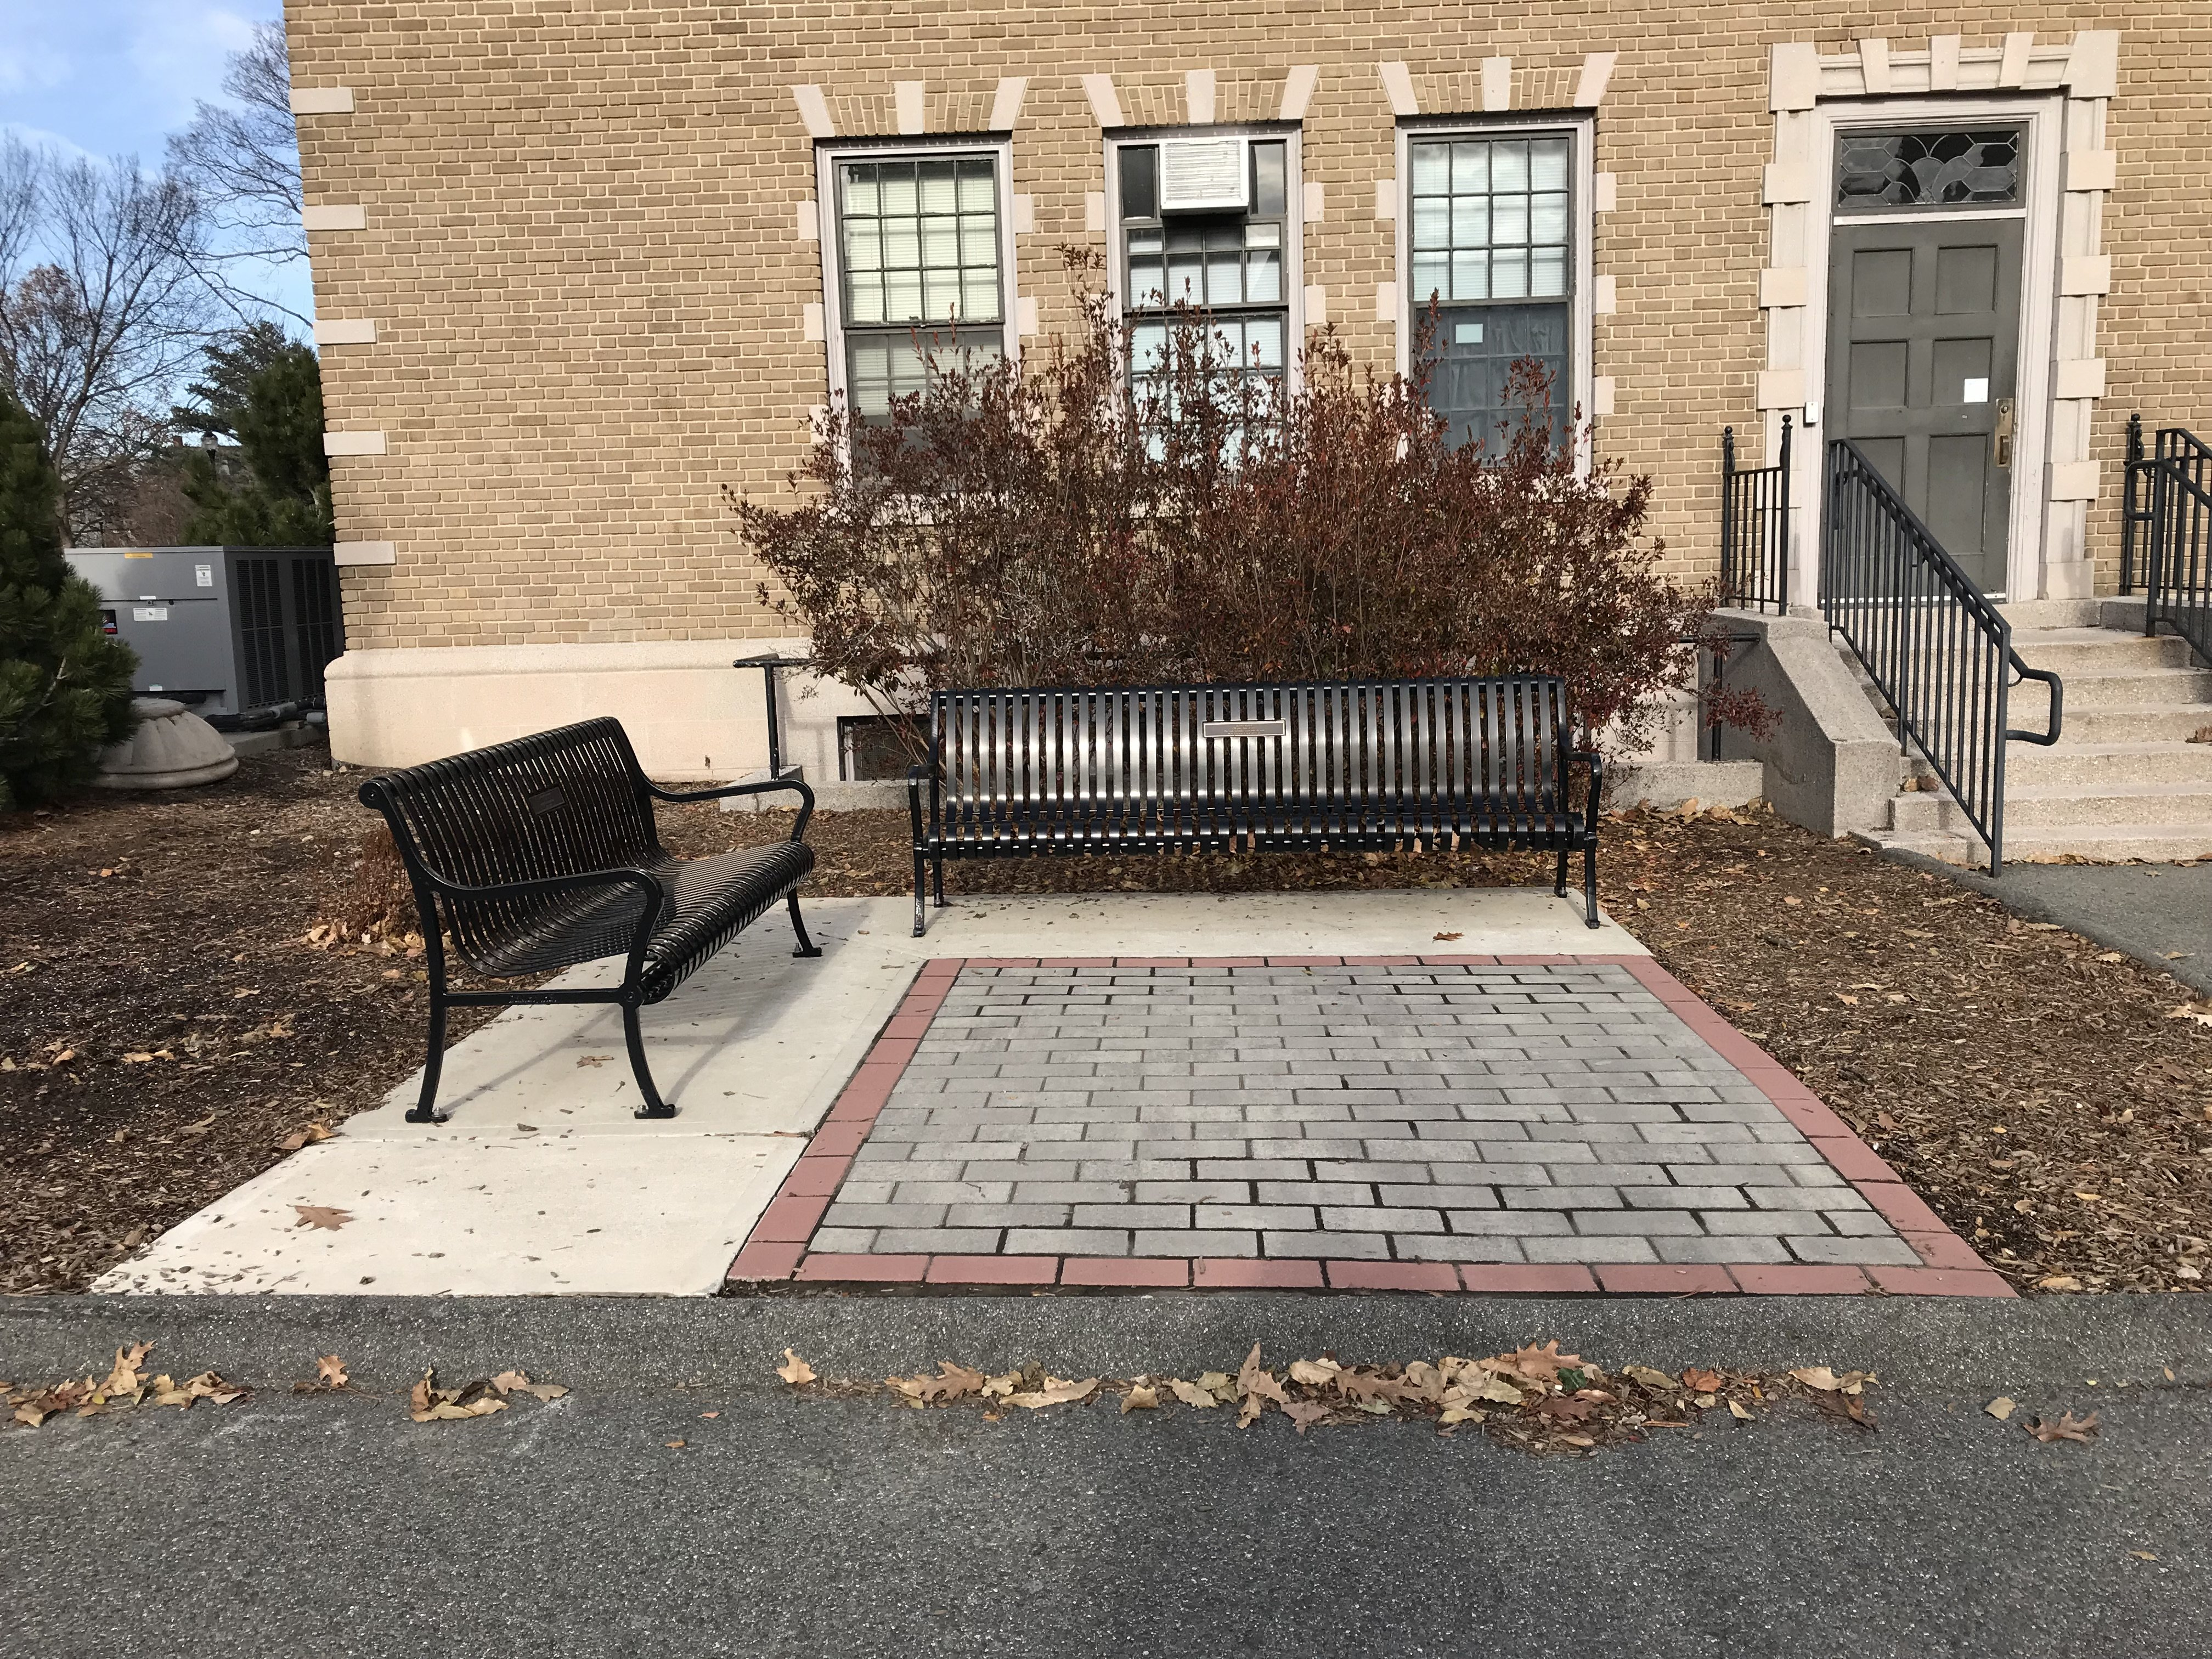 Memorial Hall grounds, memorial benches for Debbie Boden (class of 2004) and Sharon M. Galligan, 2017